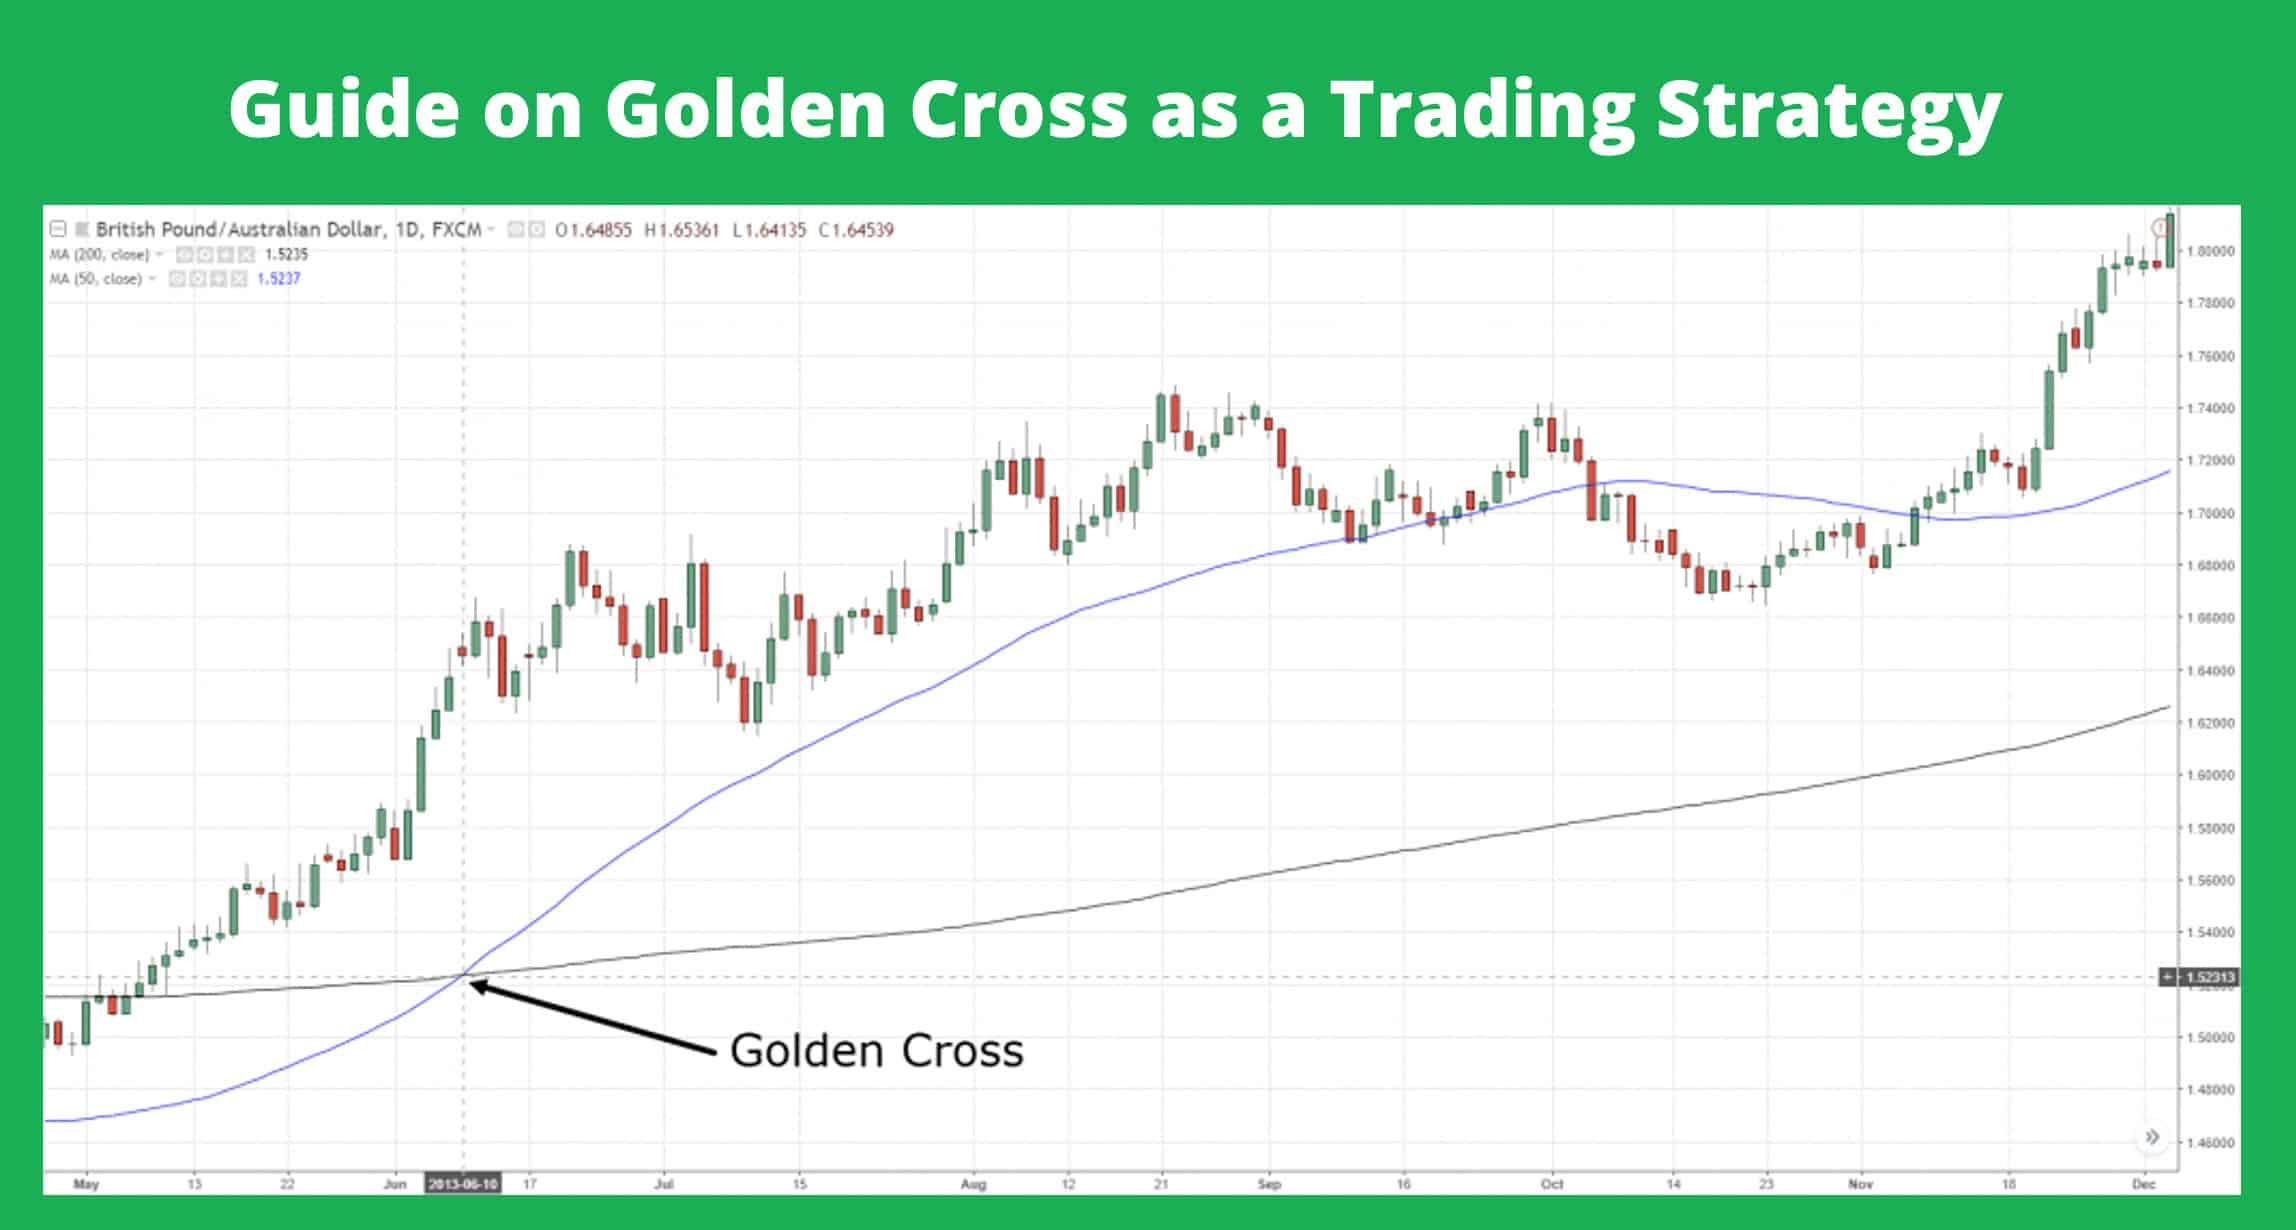 Golden Cross Trading Strategy Guide